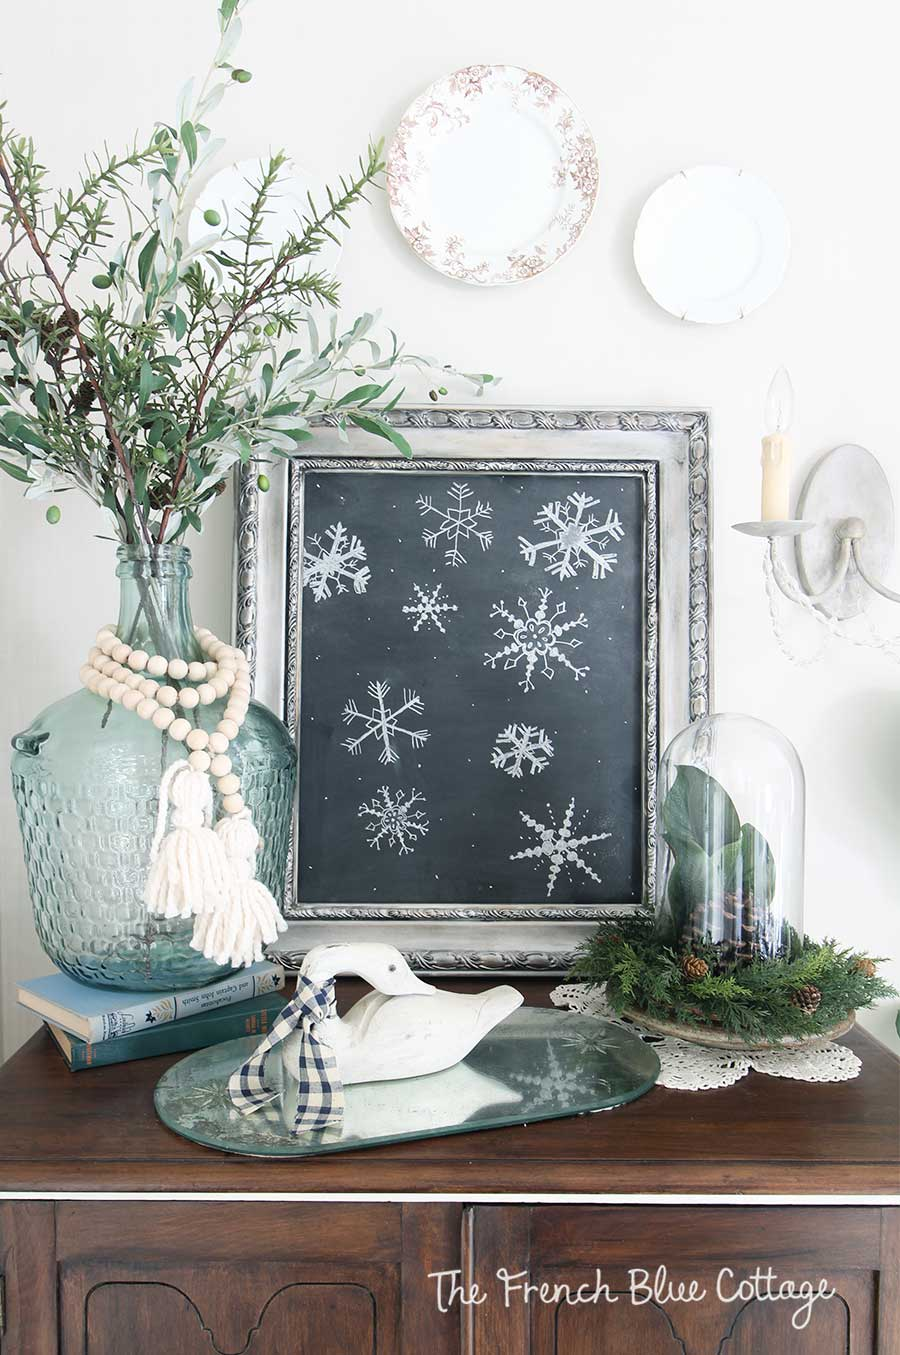 Winter vignette with wood beads and chalkboard snowflakes.